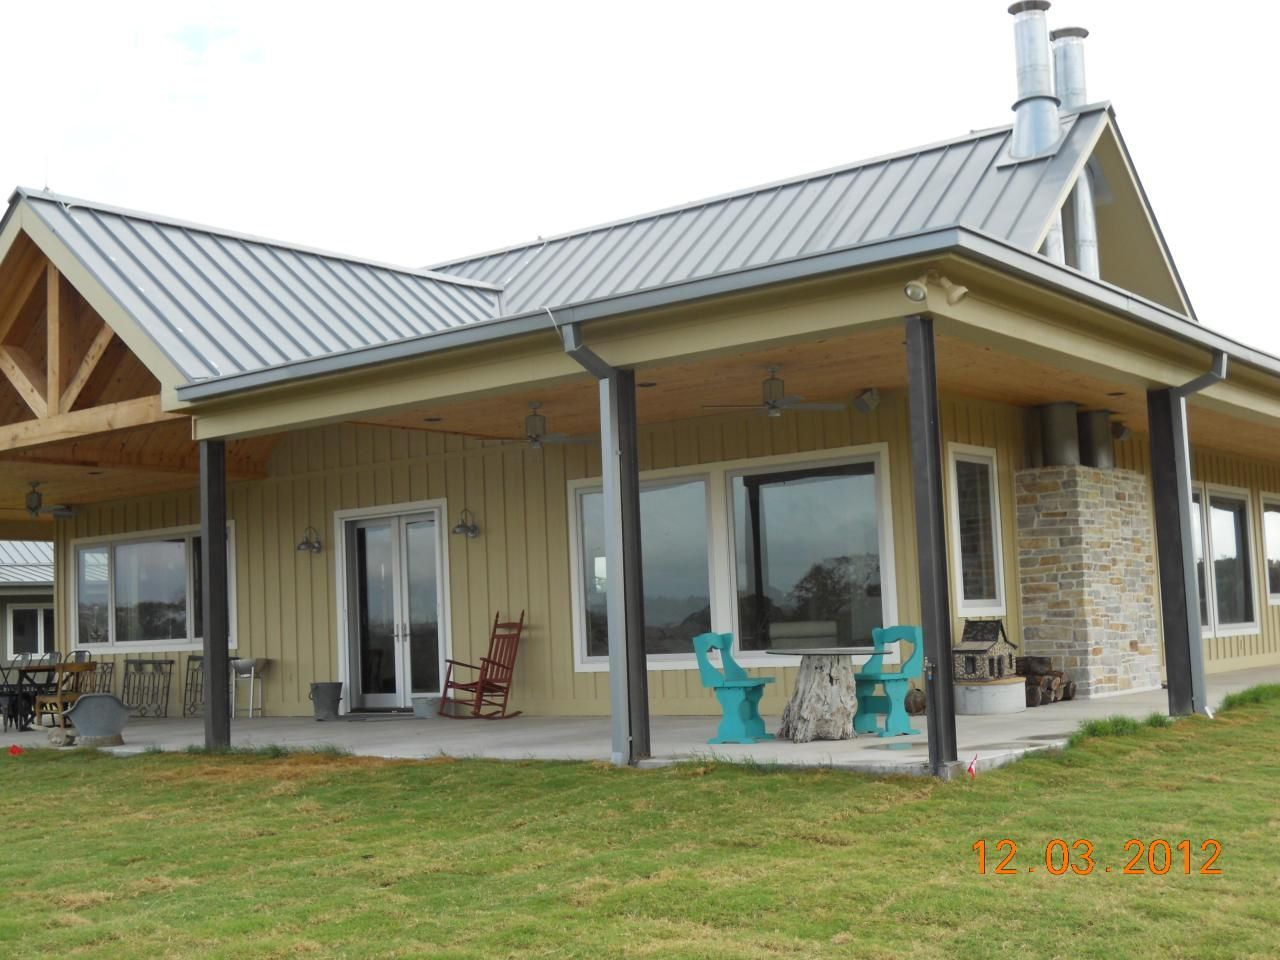 Barndominium on pinterest metal buildings metal for House plans for metal homes